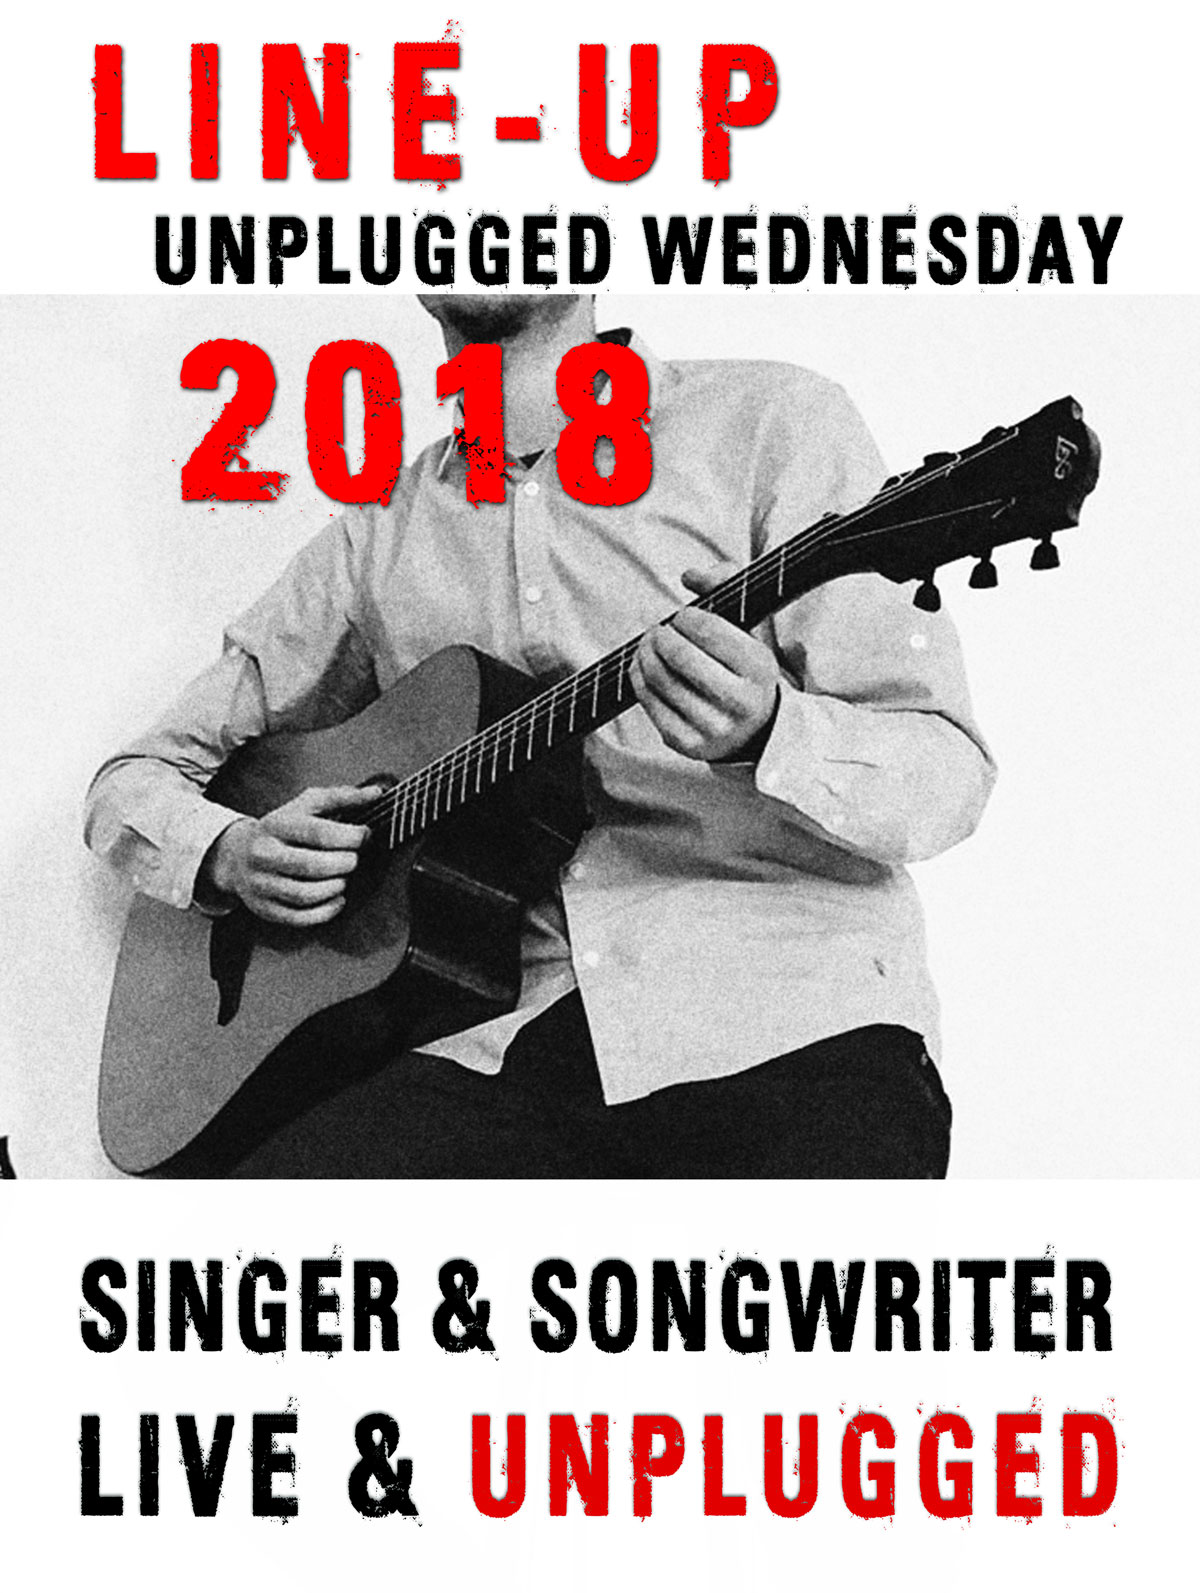 Line Up Unplugged Wednesday: diese Bands spielen bei Live am Marktplatz am Mittwochabend 2018 in Krumbach unplugged ohne große Bühne